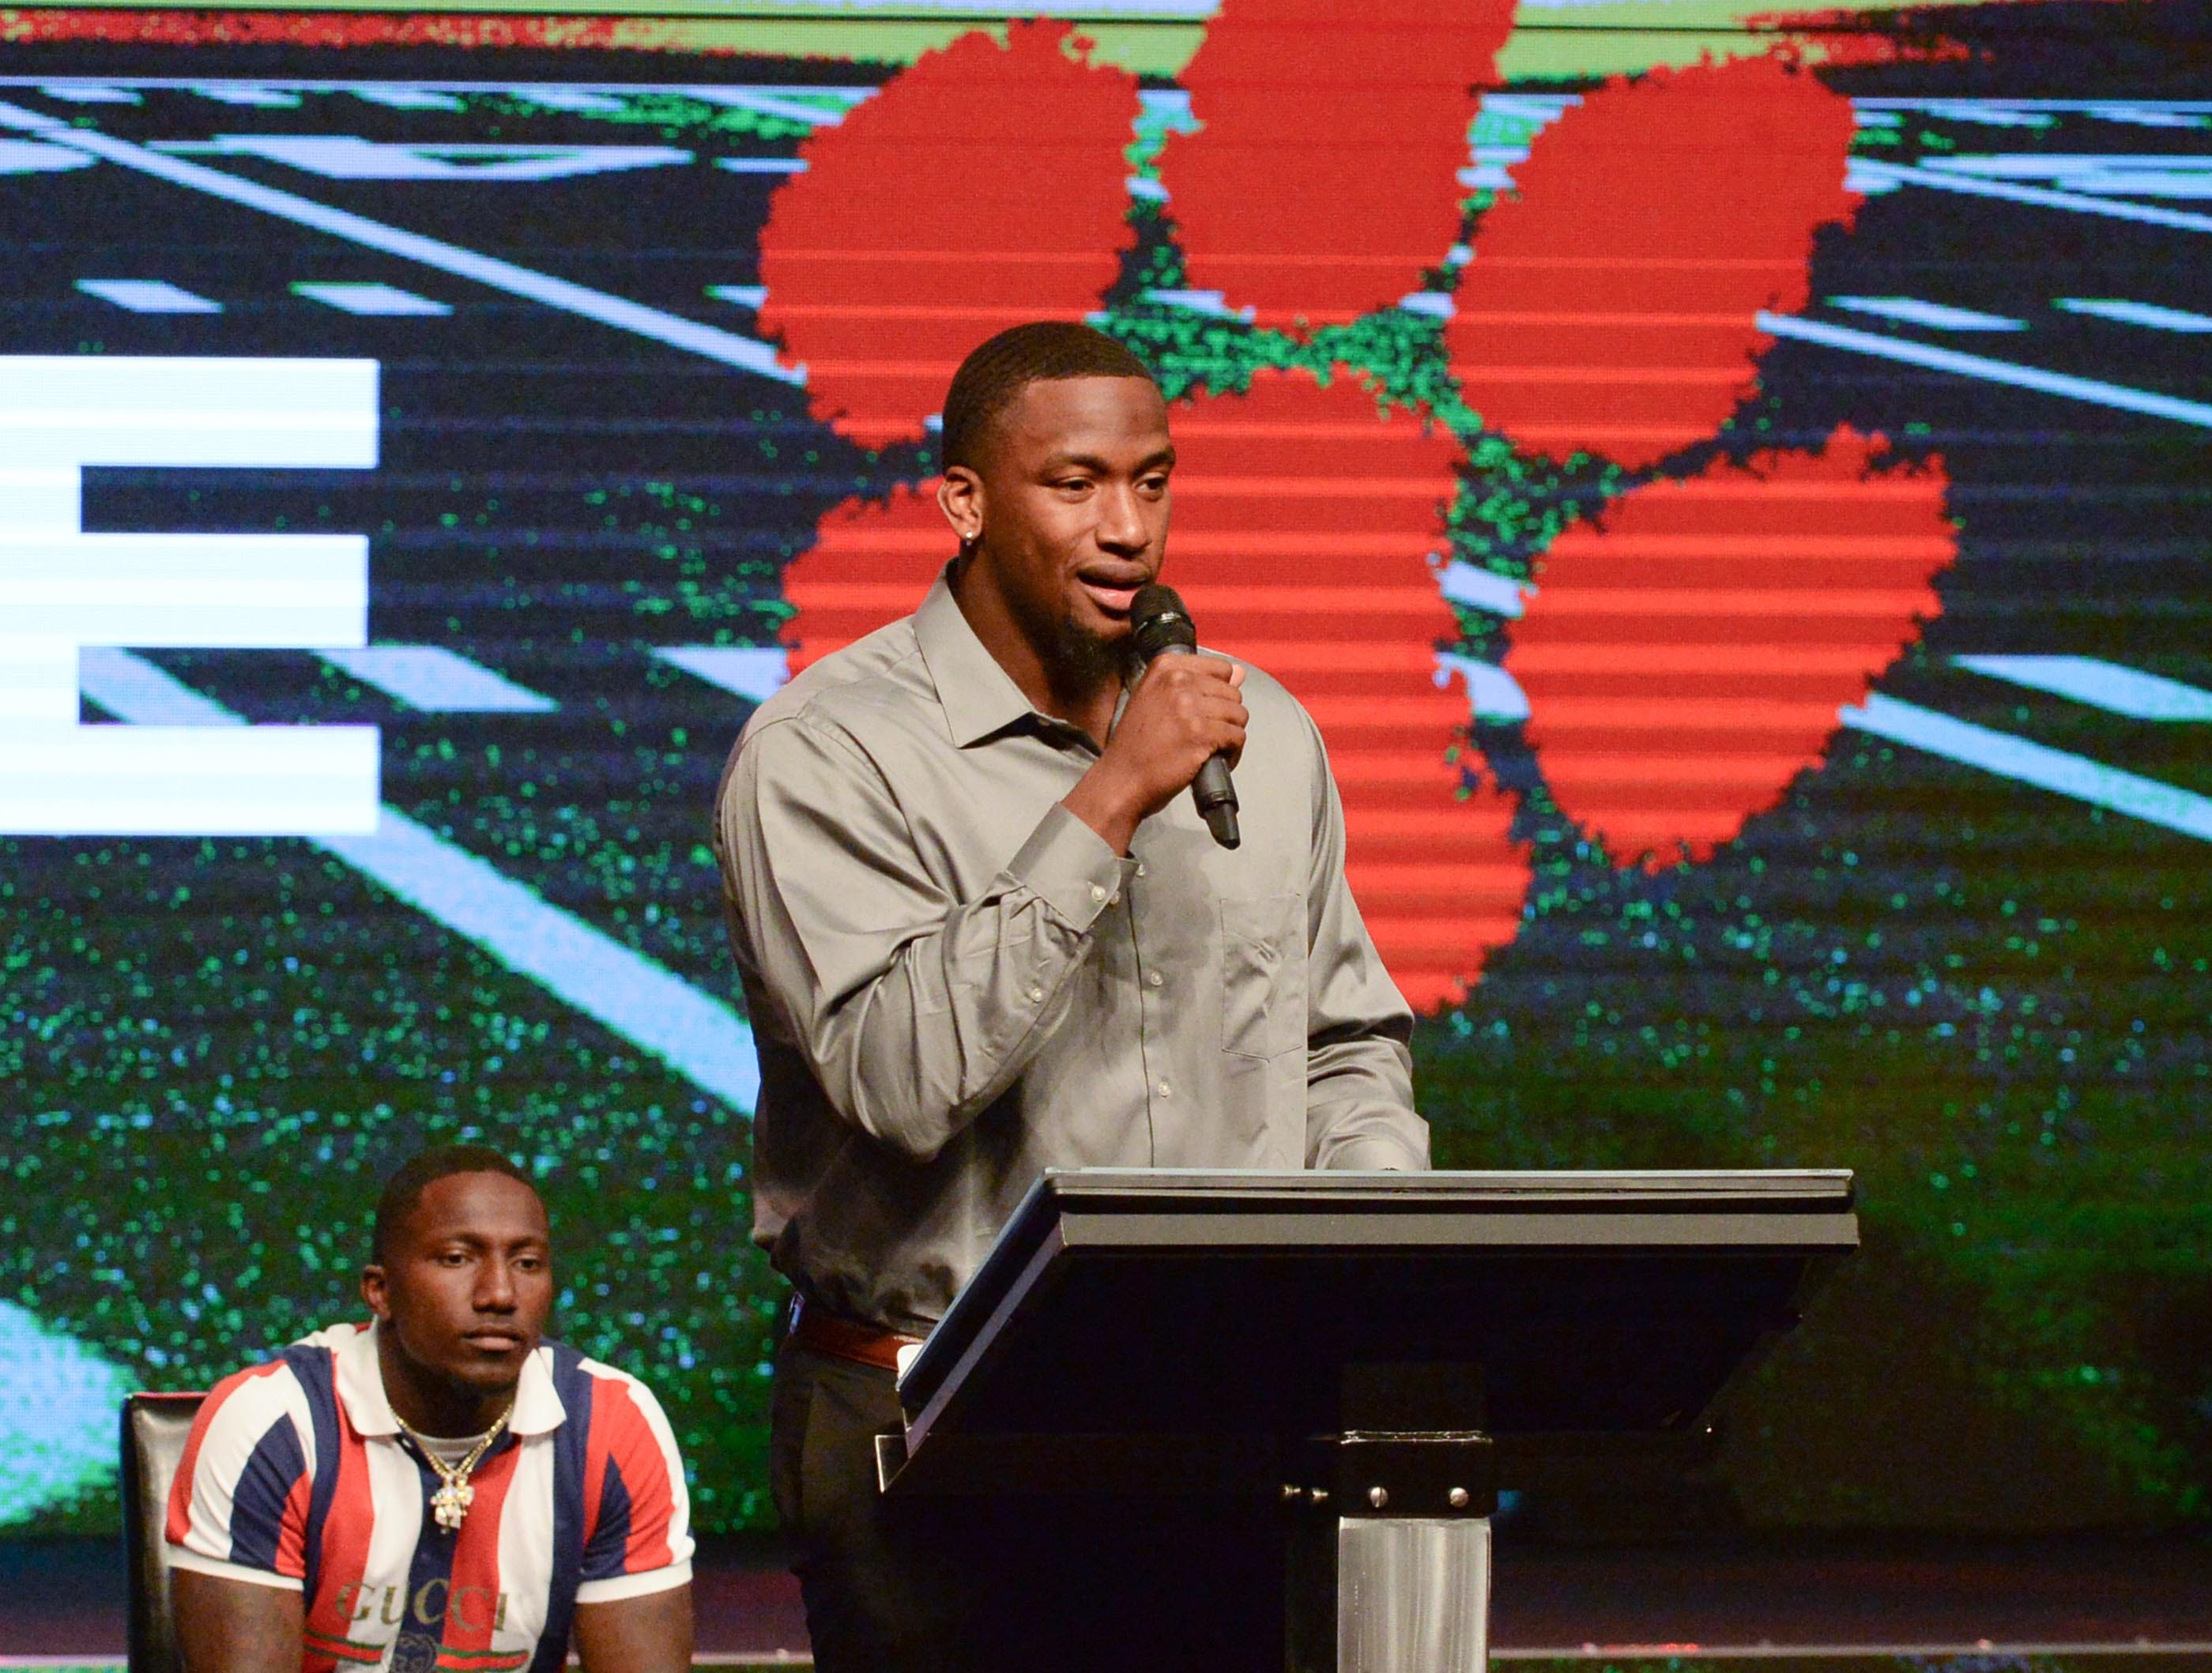 Clelin Ferrell, former Clemson football player speaks during the Coaches 4 Character event at Relentless Church in Greenville Tuesday.